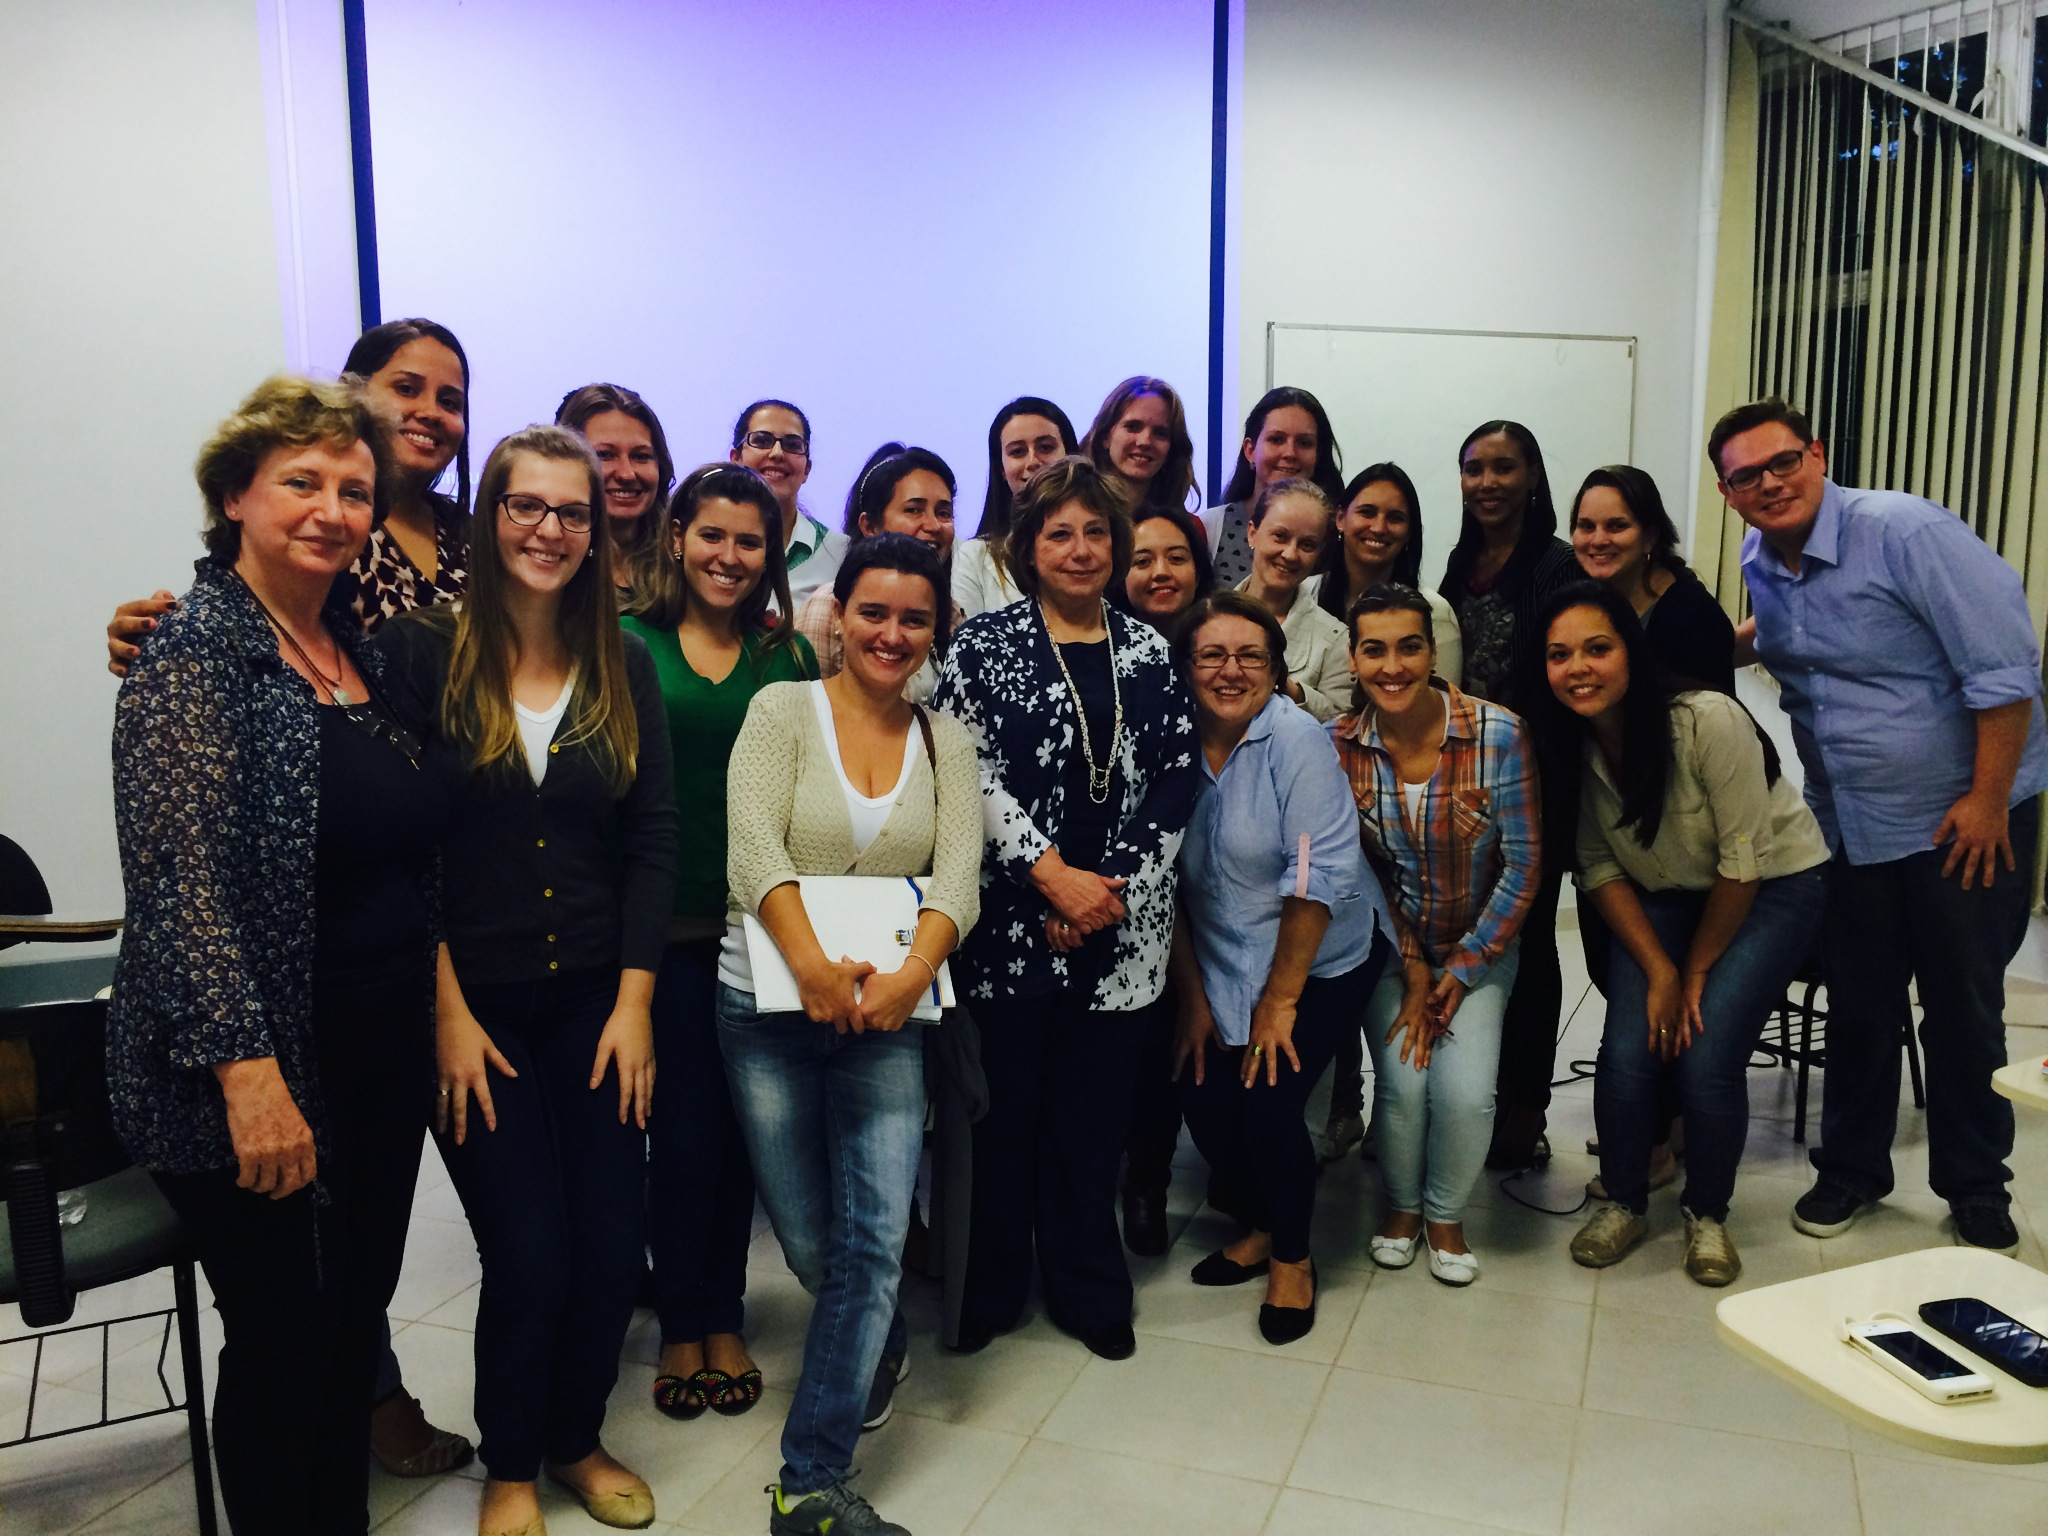 Dr. Mary Anthony's trip to Brazil